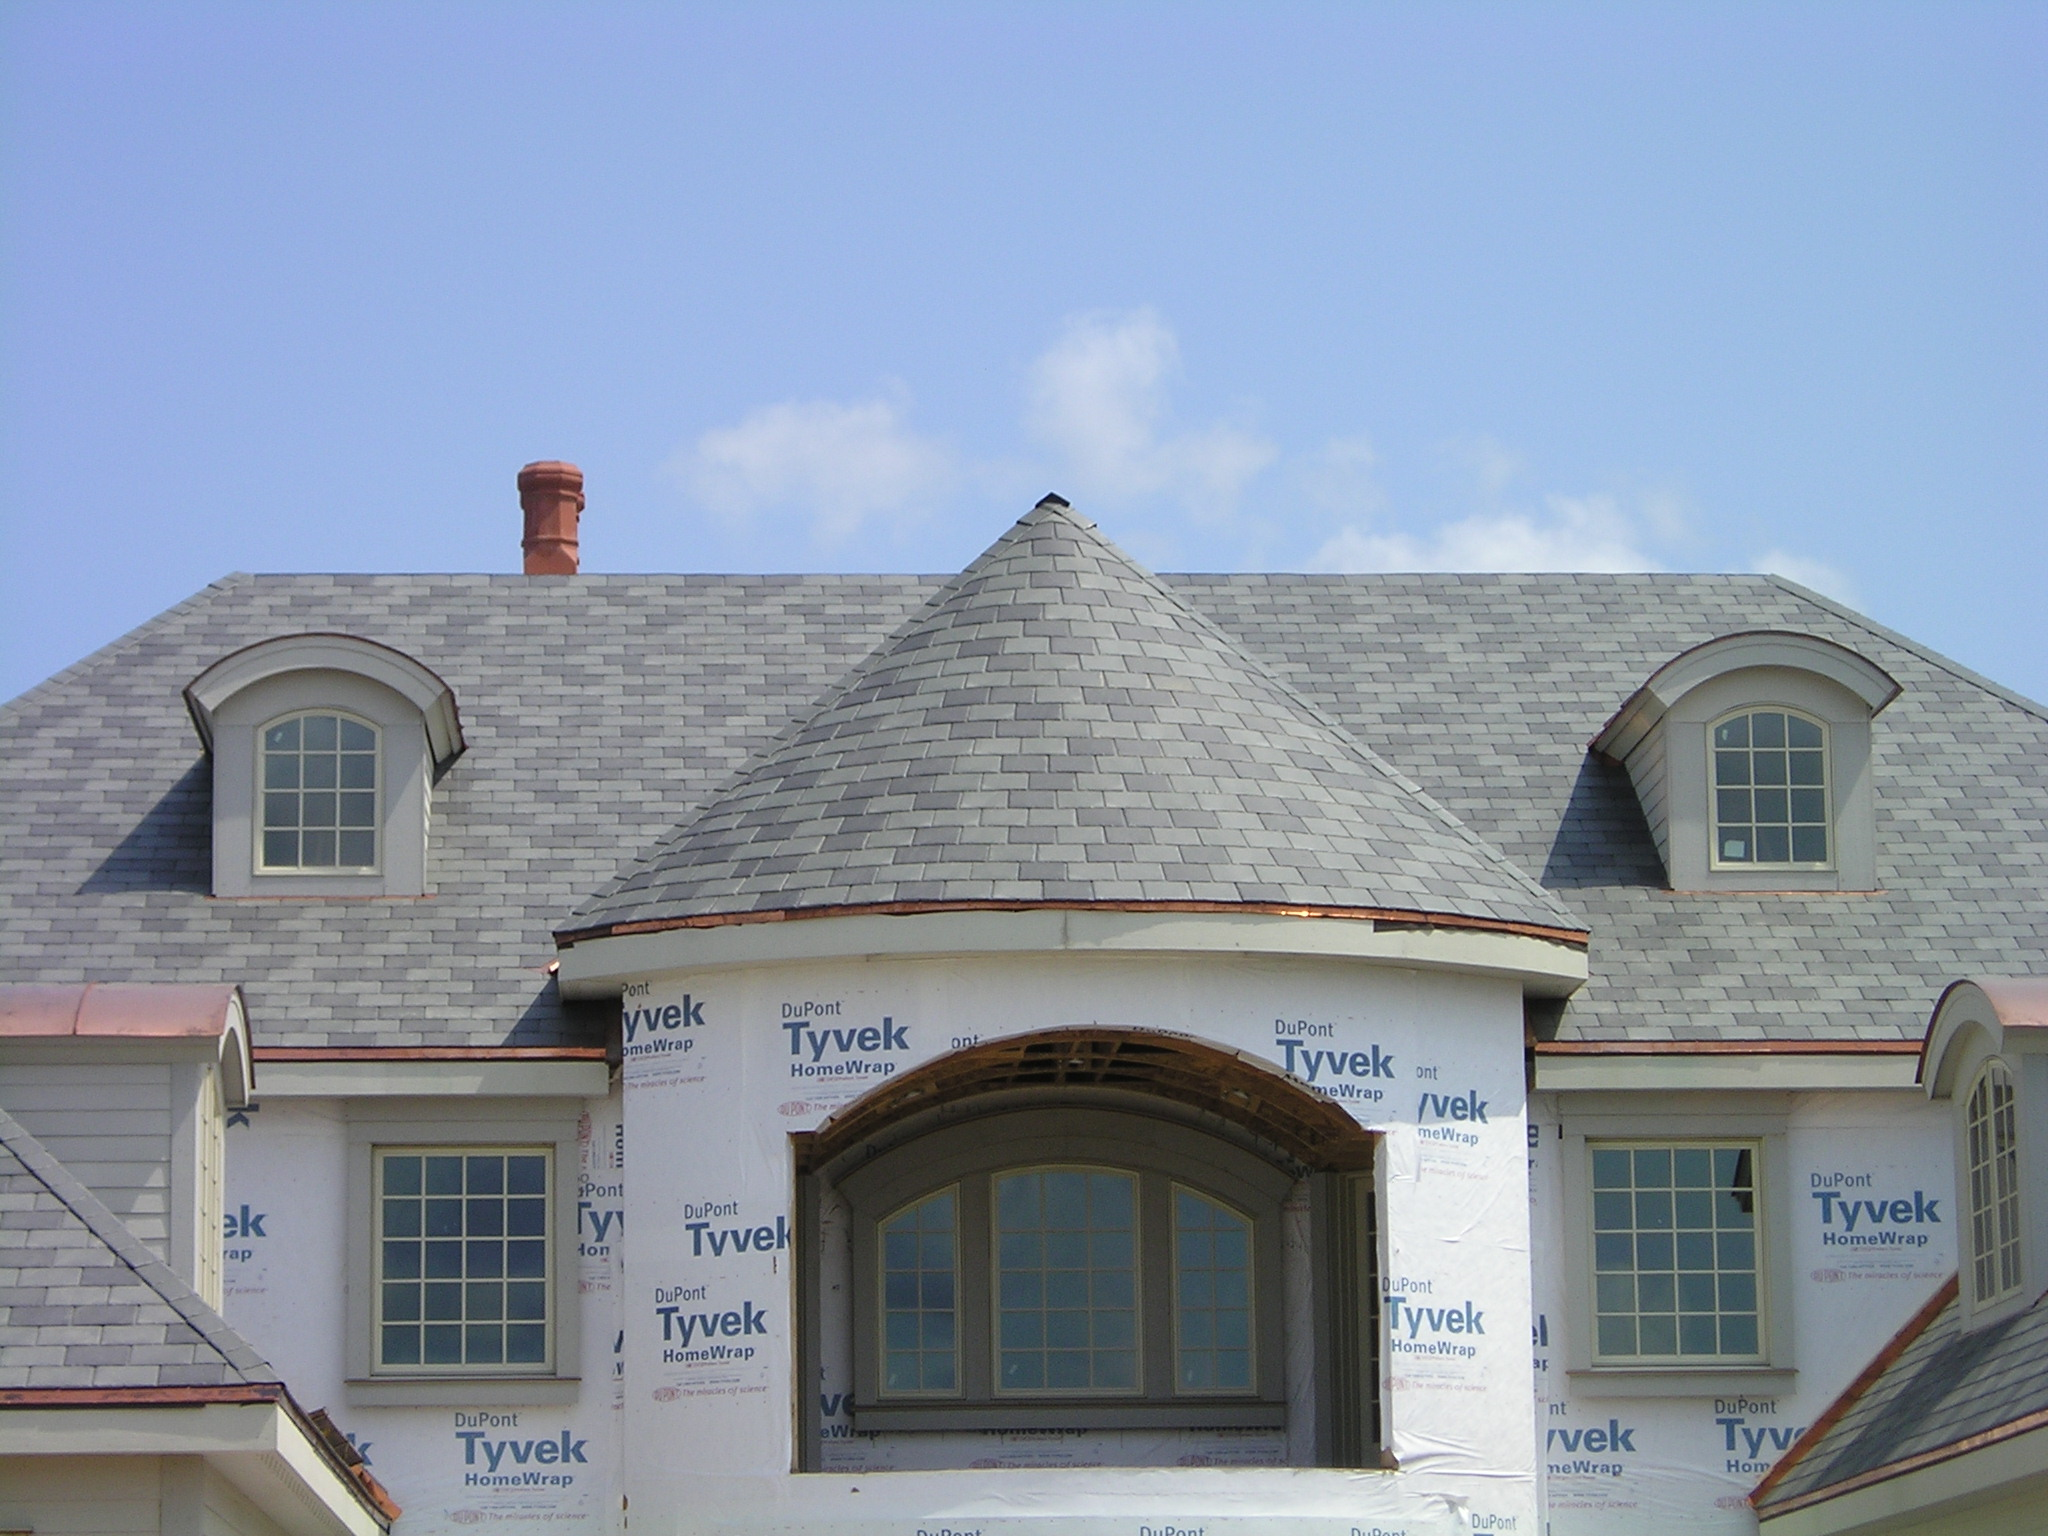 Turret style roof